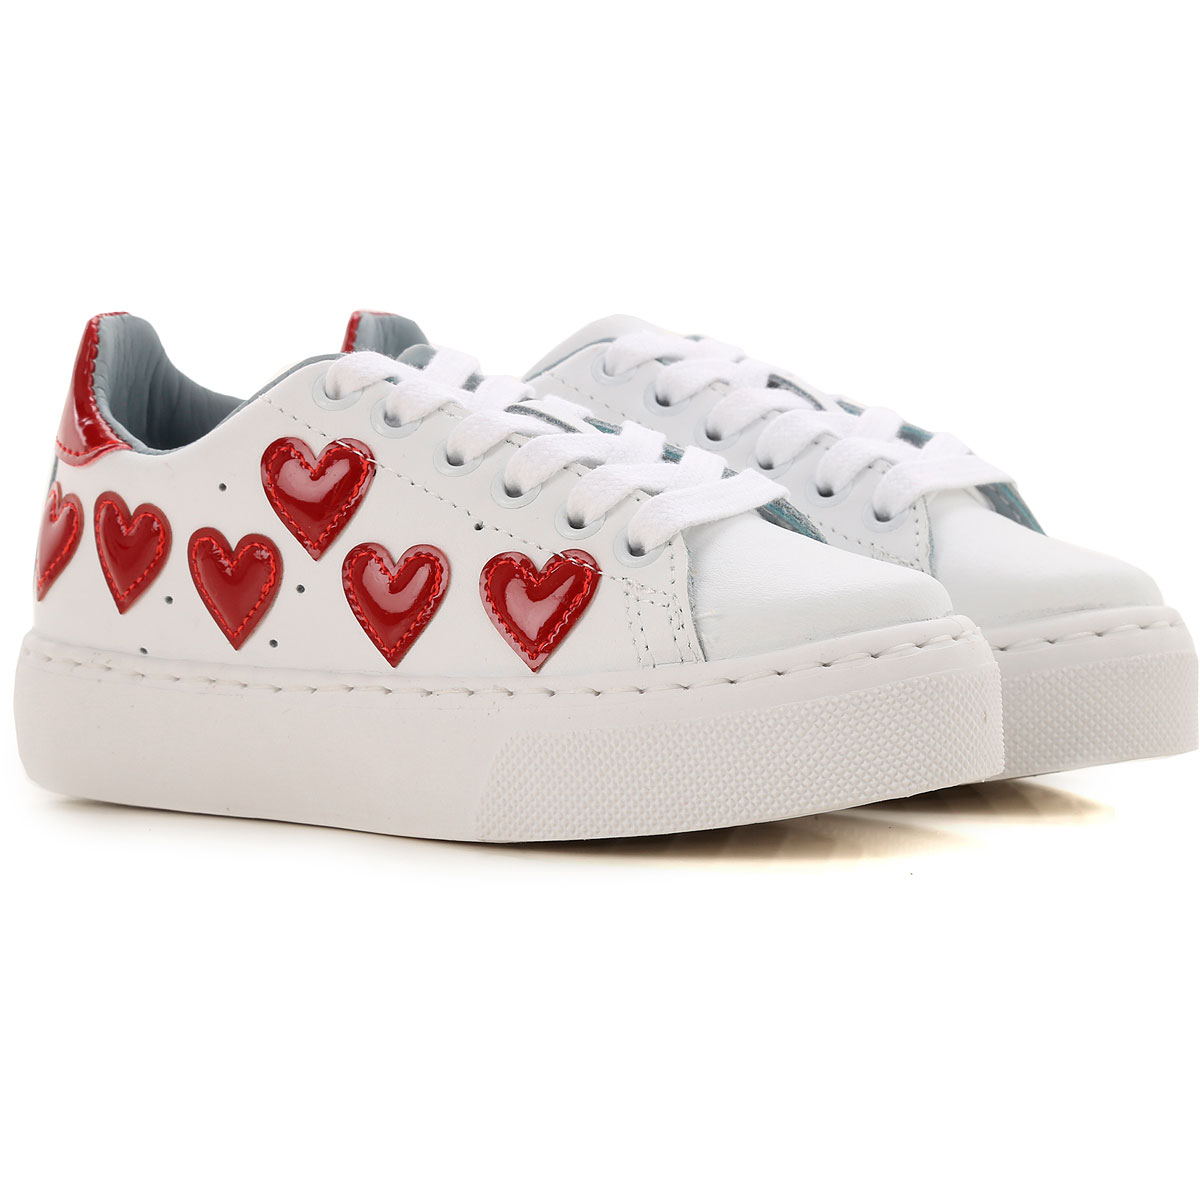 Image of Chiara Ferragni Kids Shoes for Girls, White, Letaher, 2017, 28 29 30 31 32 33 34 35 36